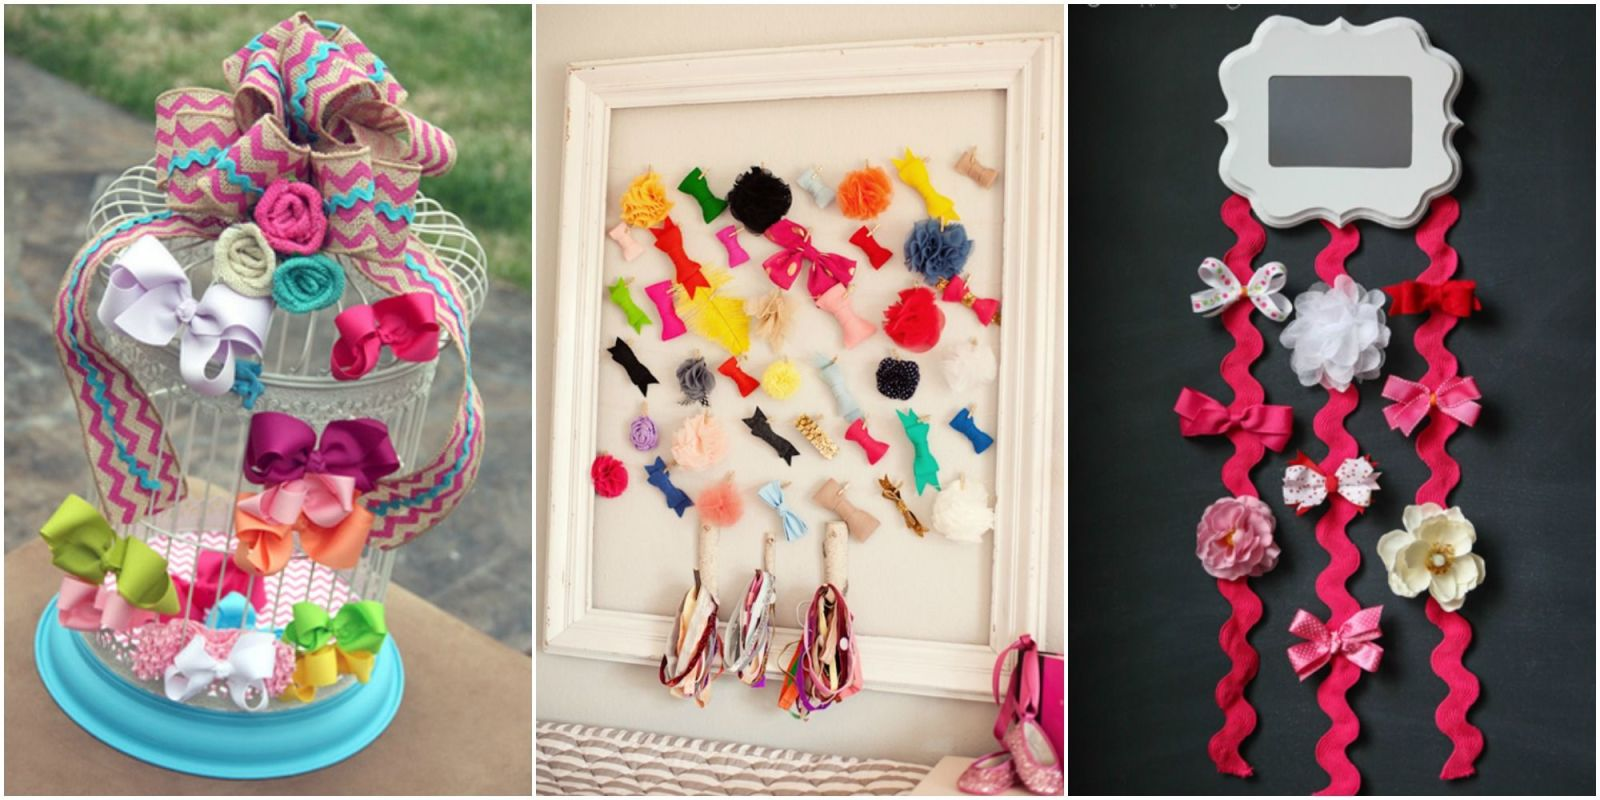 How to organize hair bows - How To Organize Hair Accessories Storage Solutions For Bows And Headbands